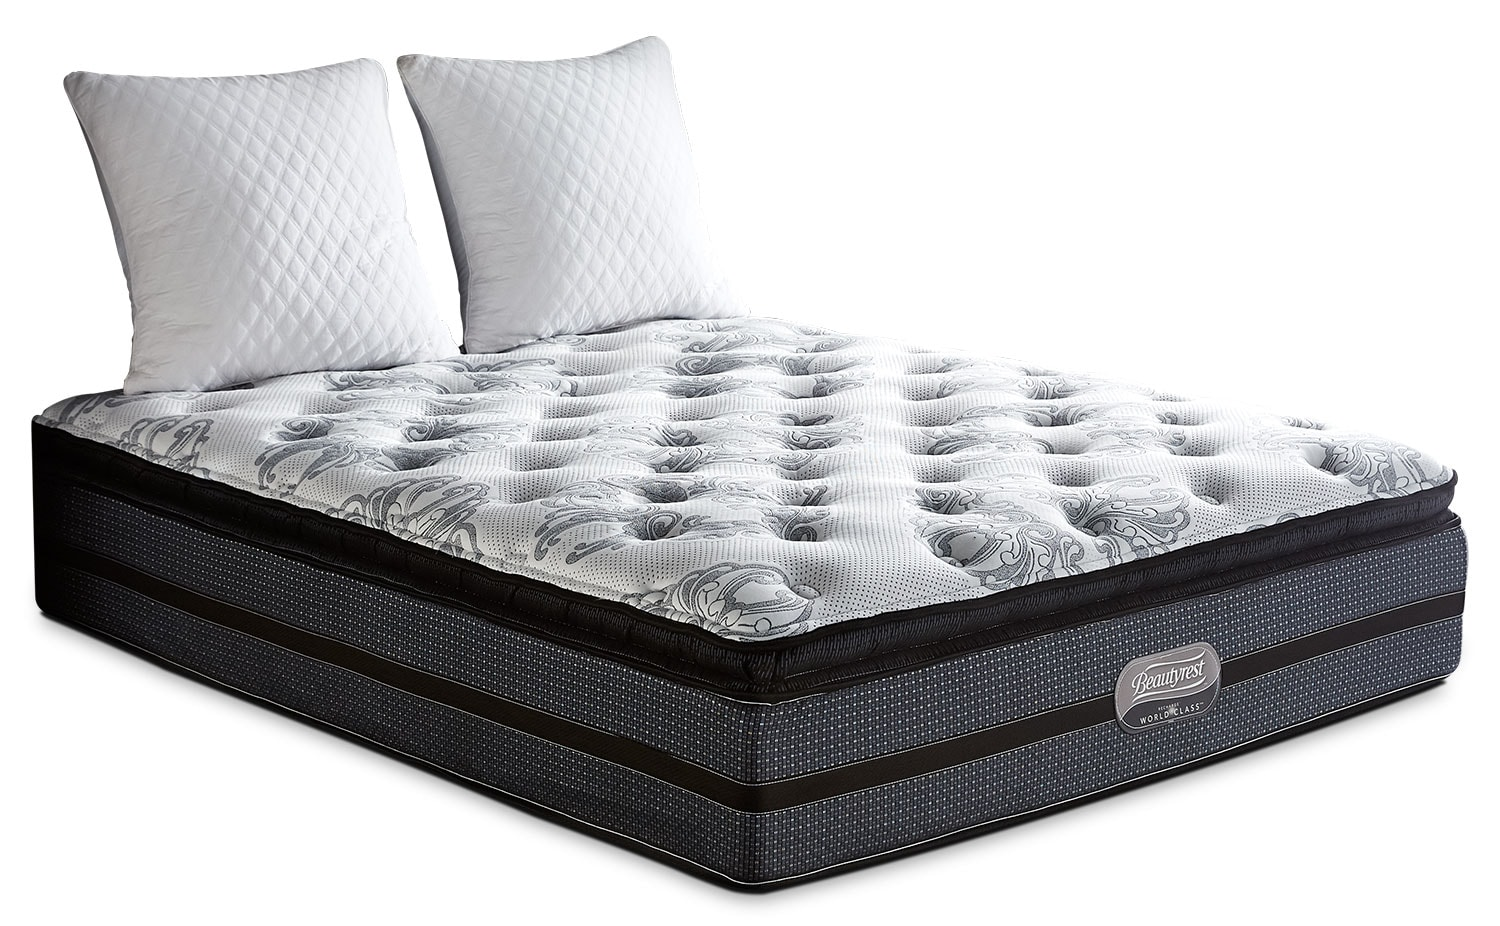 Mattresses and Bedding - Simmons Beautyrest® World Class Helmsley Pillow-Top Plush Full Mattress